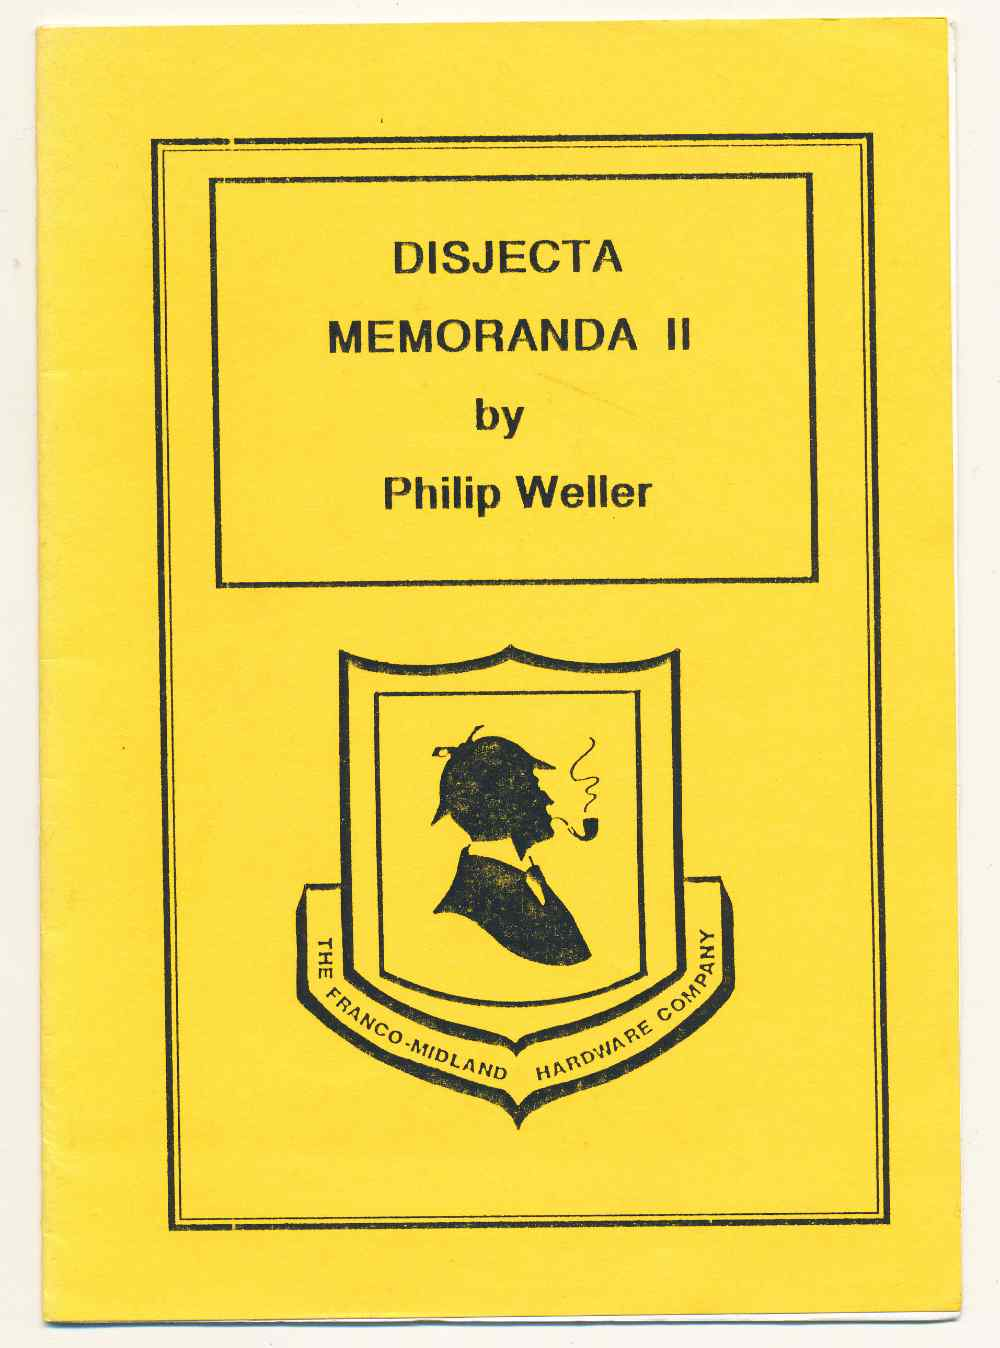 Disjecta memoranda II : a divertissement to accompany the Franco-Midland Hardware Company excursion to Crowborough and Royal Tunbridge Wells [Disjecta Membra II] Saturday 11th January 1992